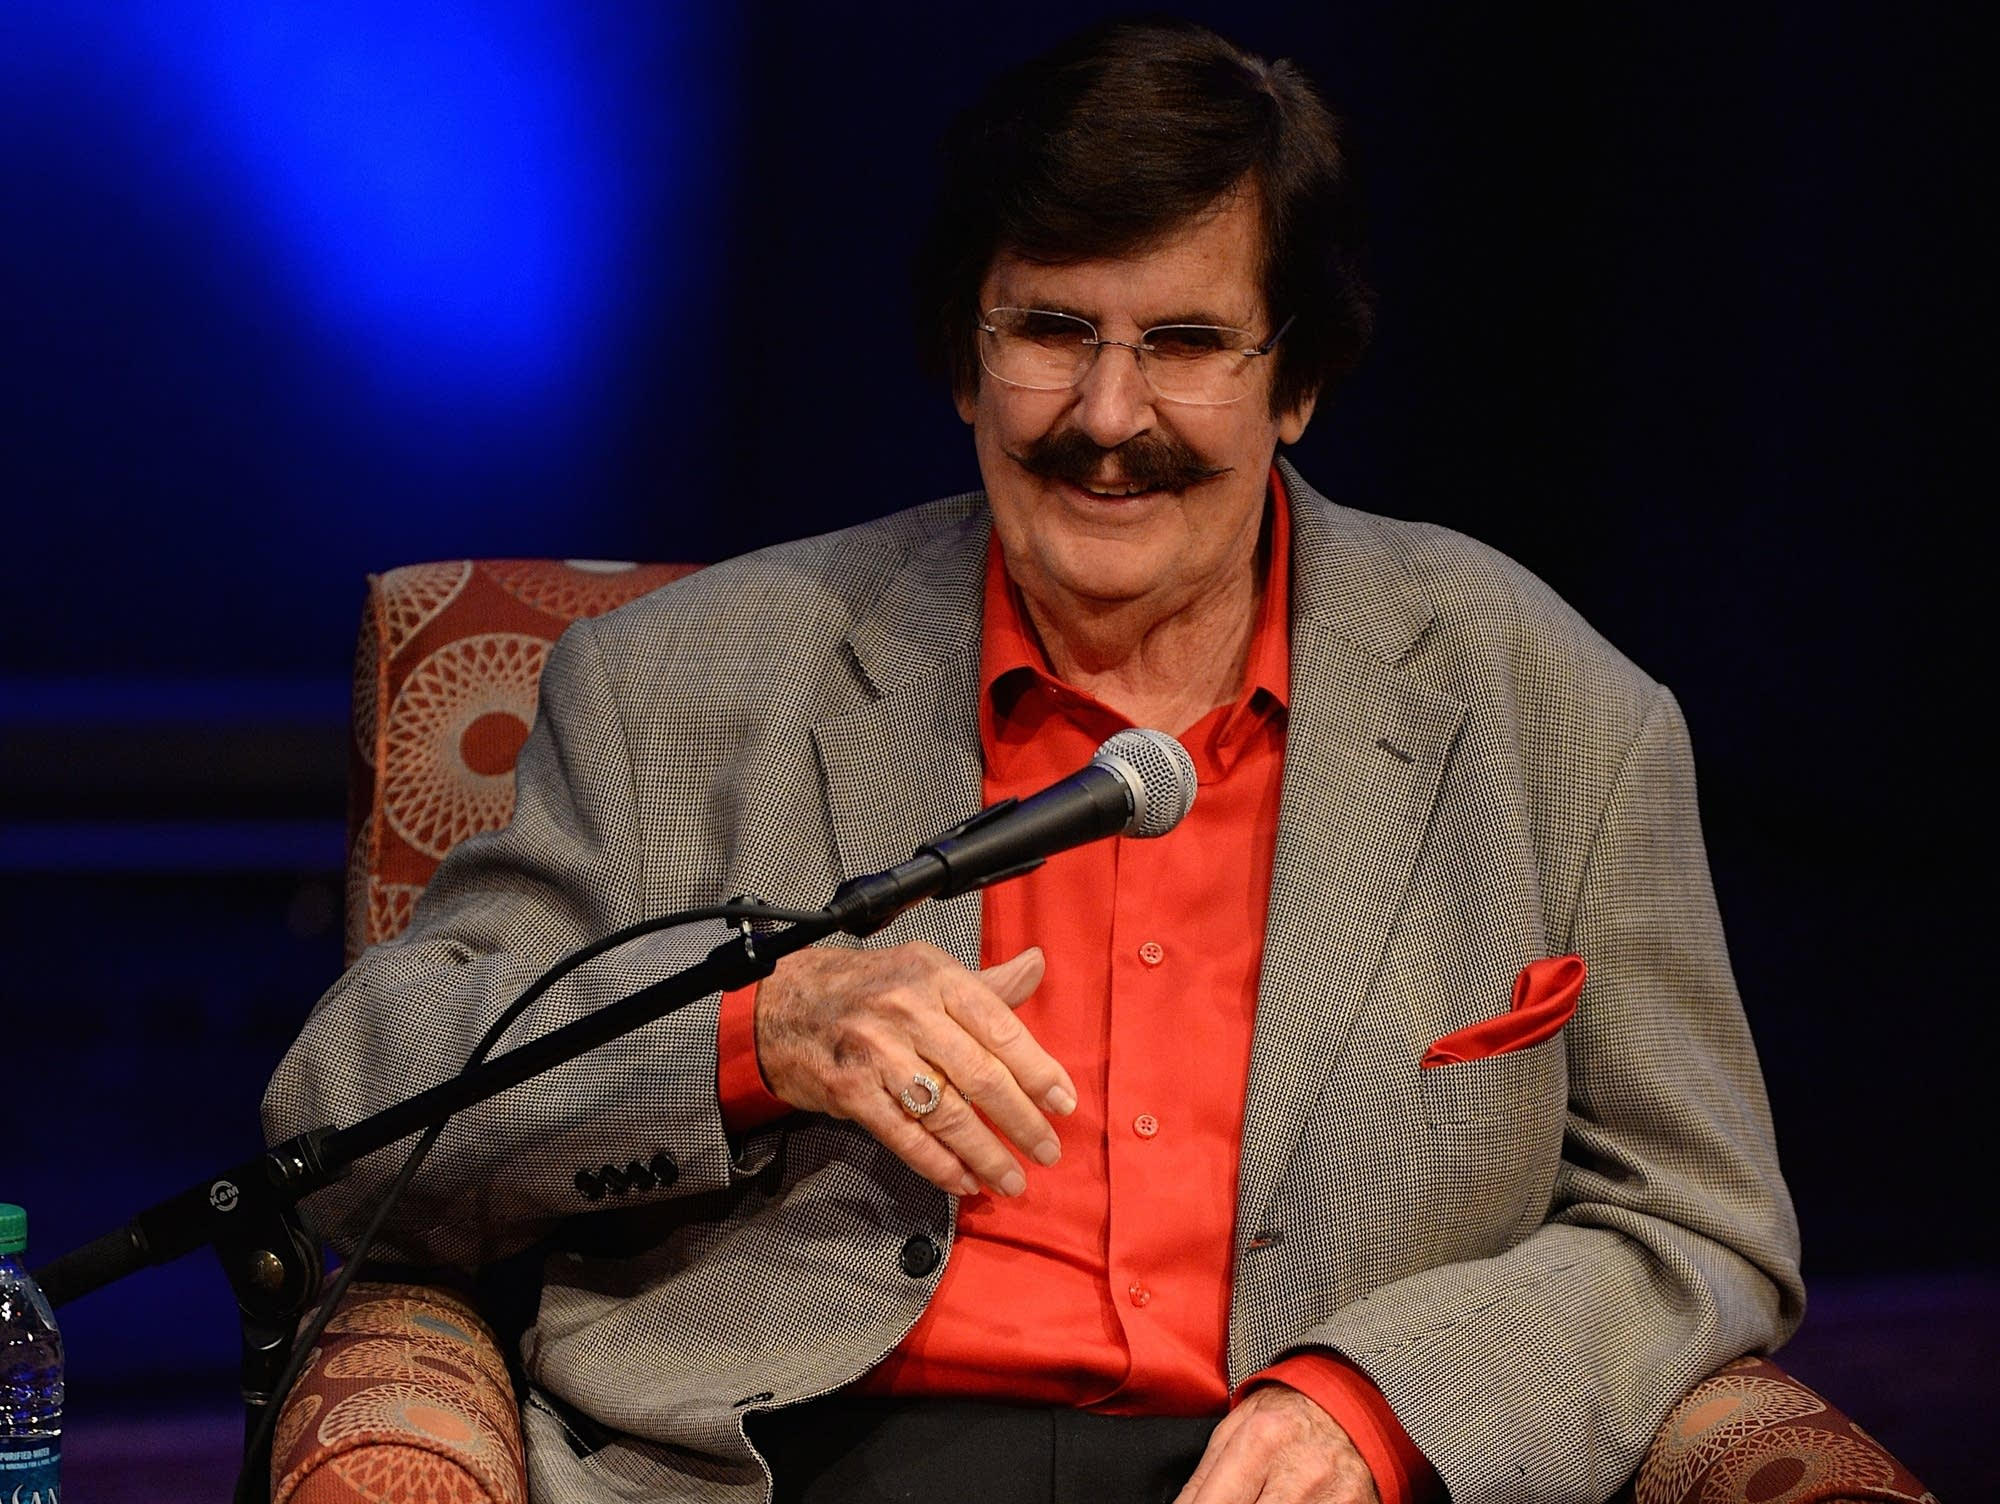 Rick Hall speaks at the Country Music Hall of Fame and Museum in 2015.